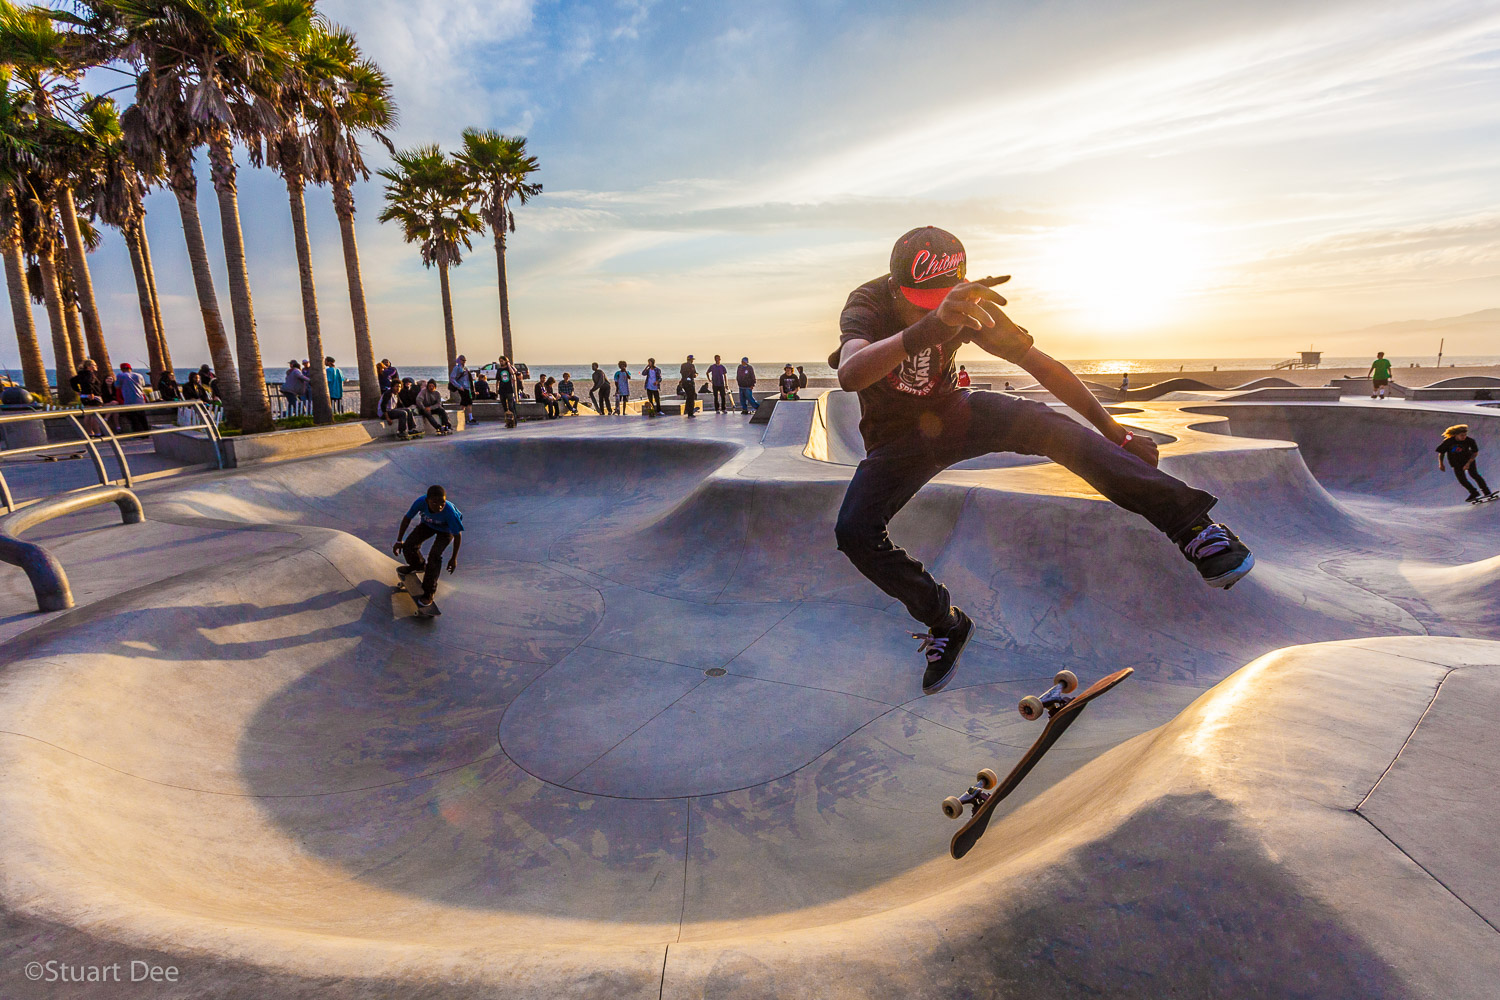 Skateboarders, Venice Beach, Los Angeles, California, USA